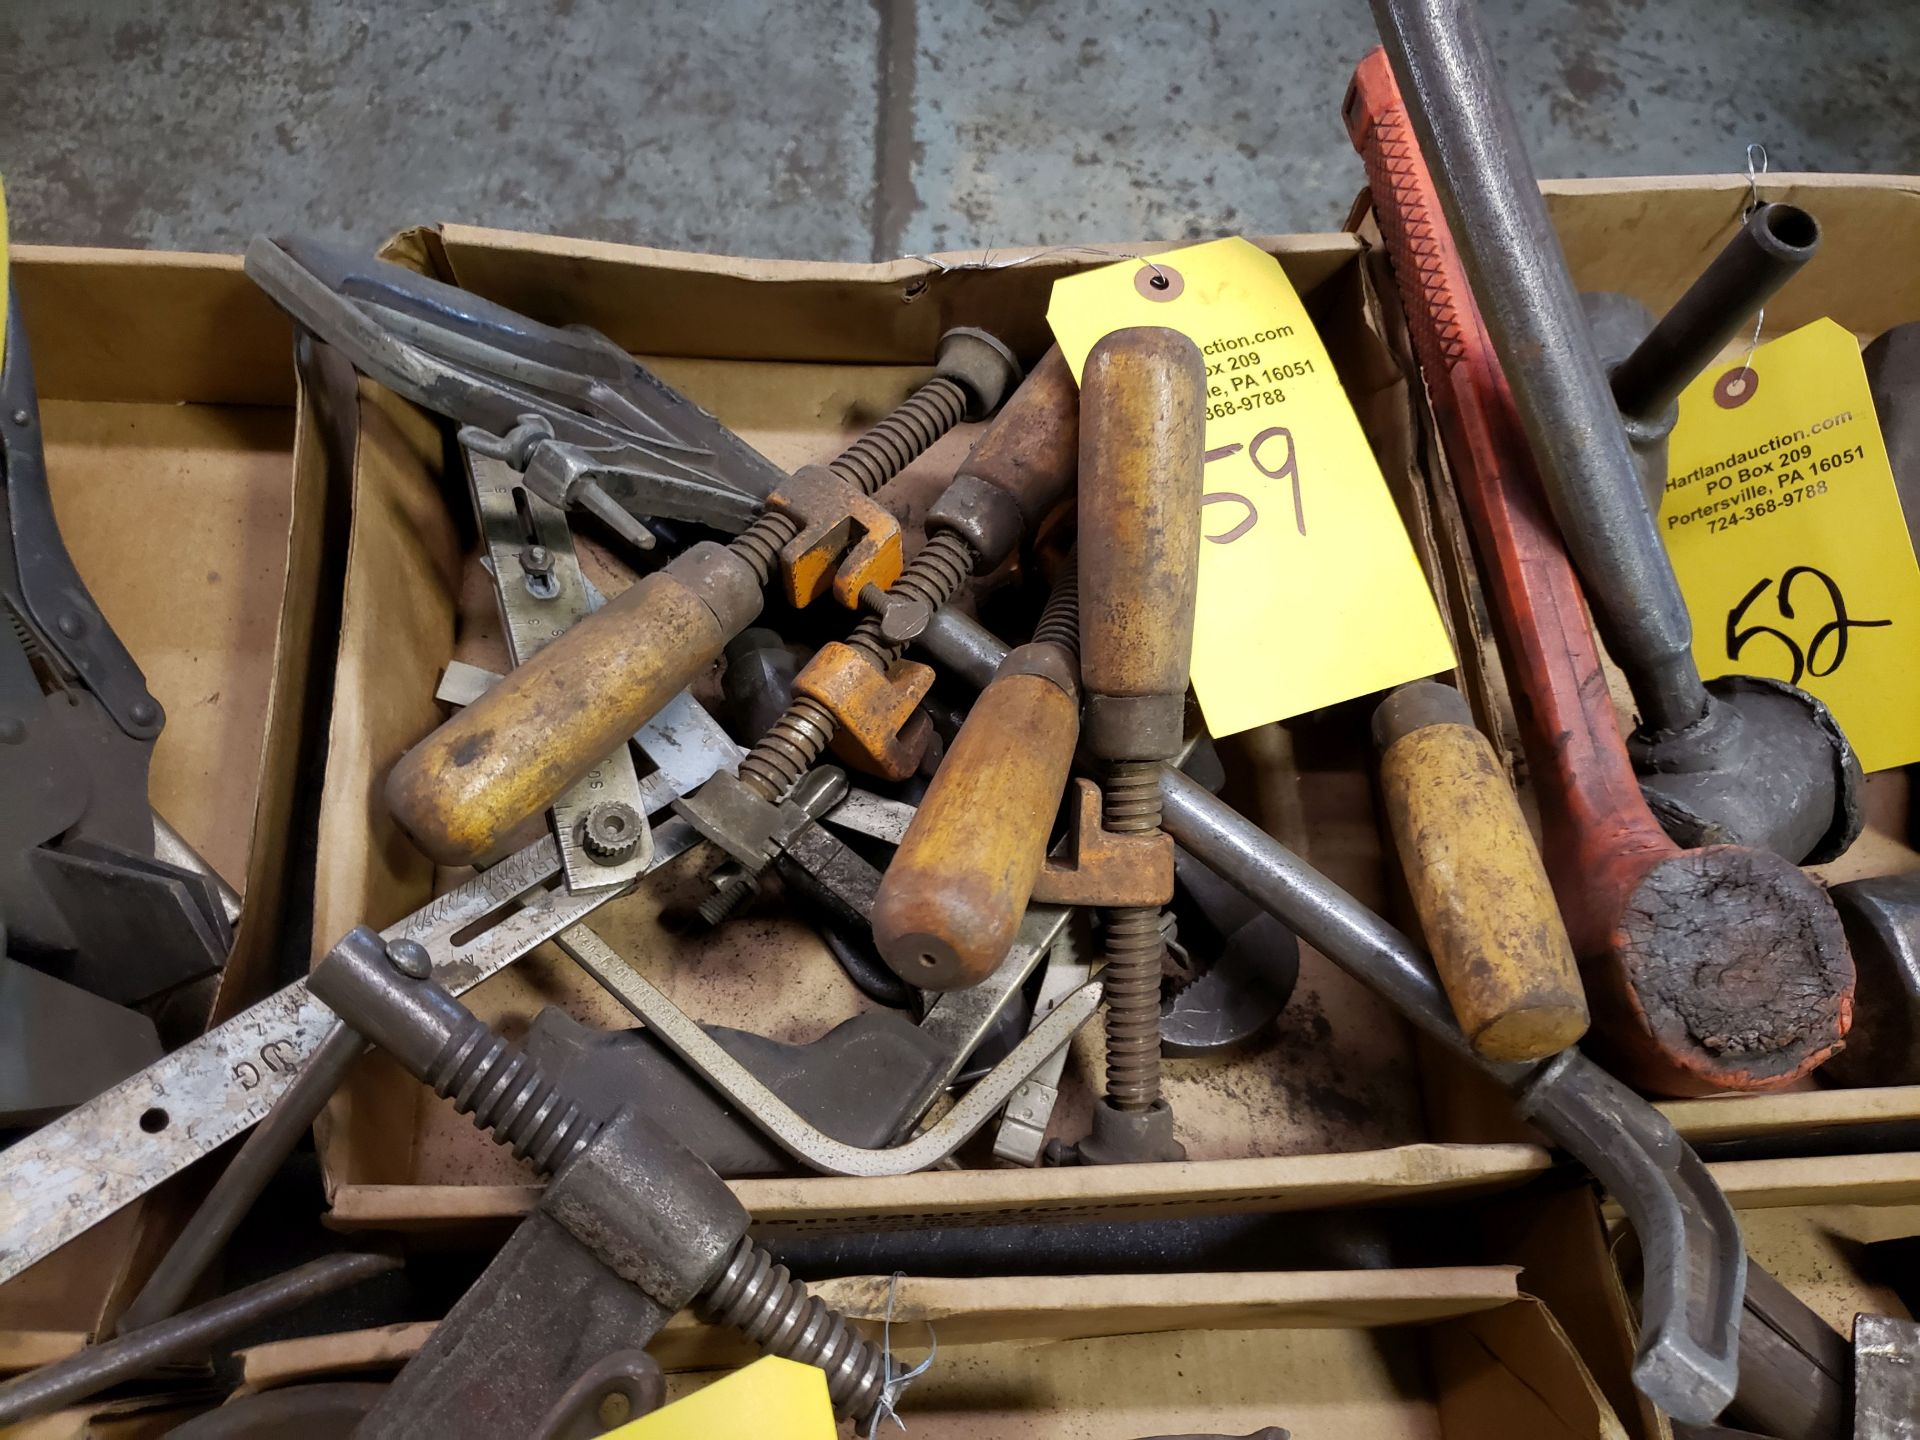 Lot 59 - ASSORTED CLAMPS & MISC TOOLS